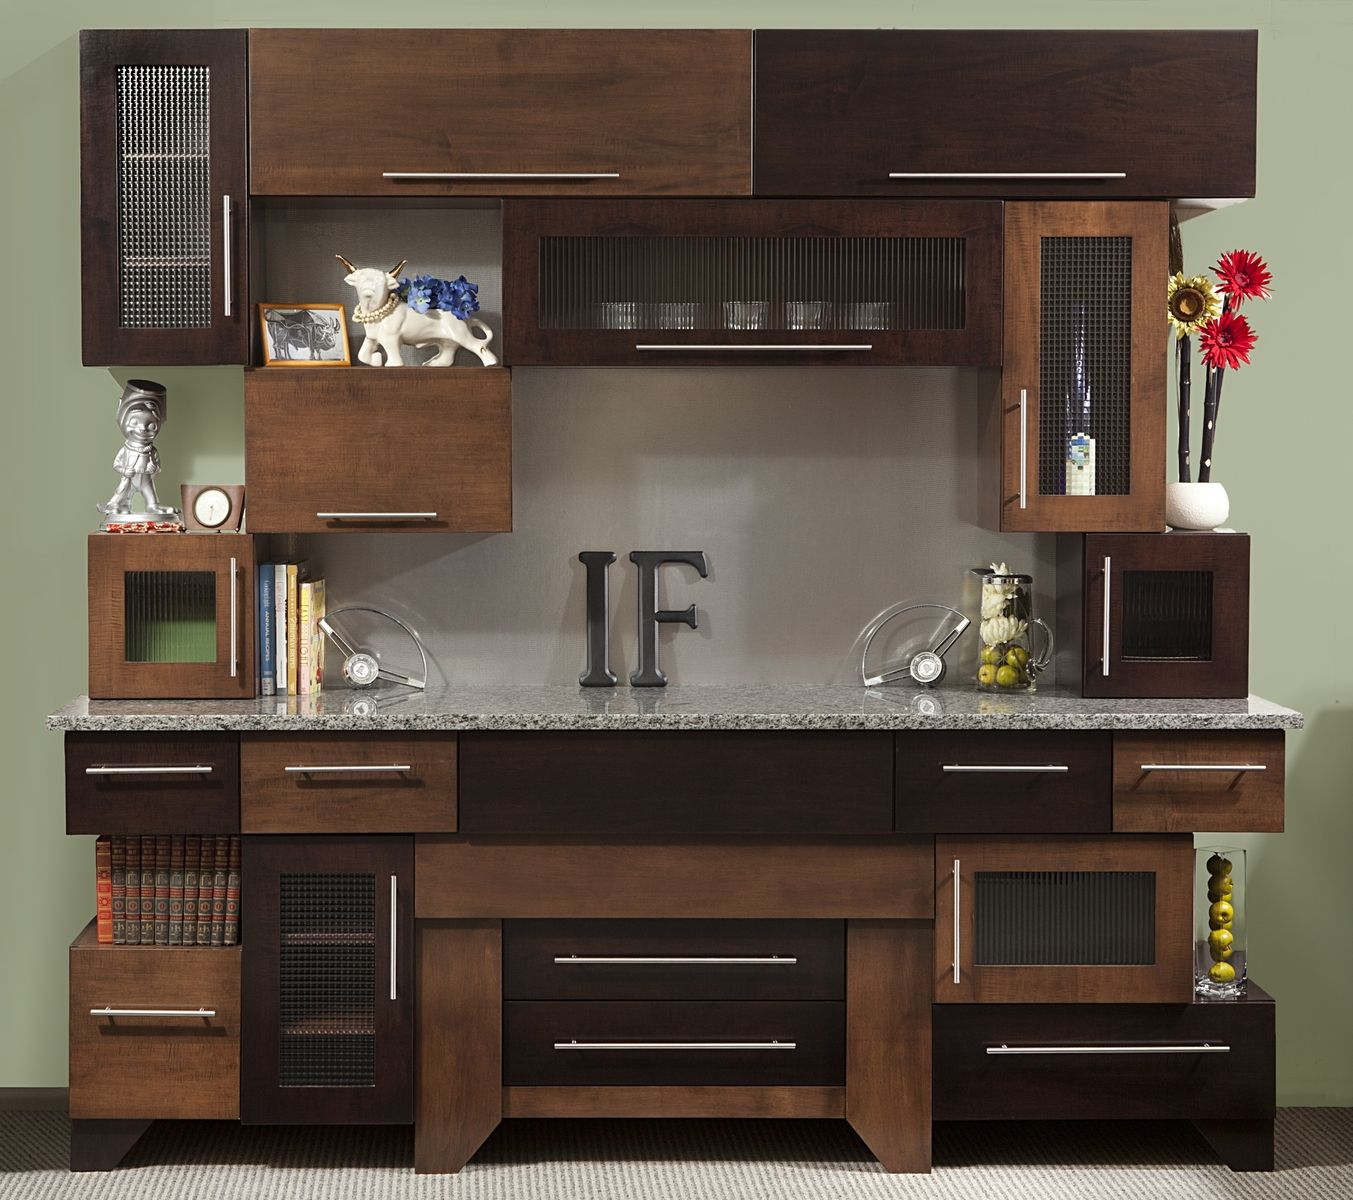 Hand made cubist cabinets kitchen modern clean in tiger for Modern kitchen cabinets